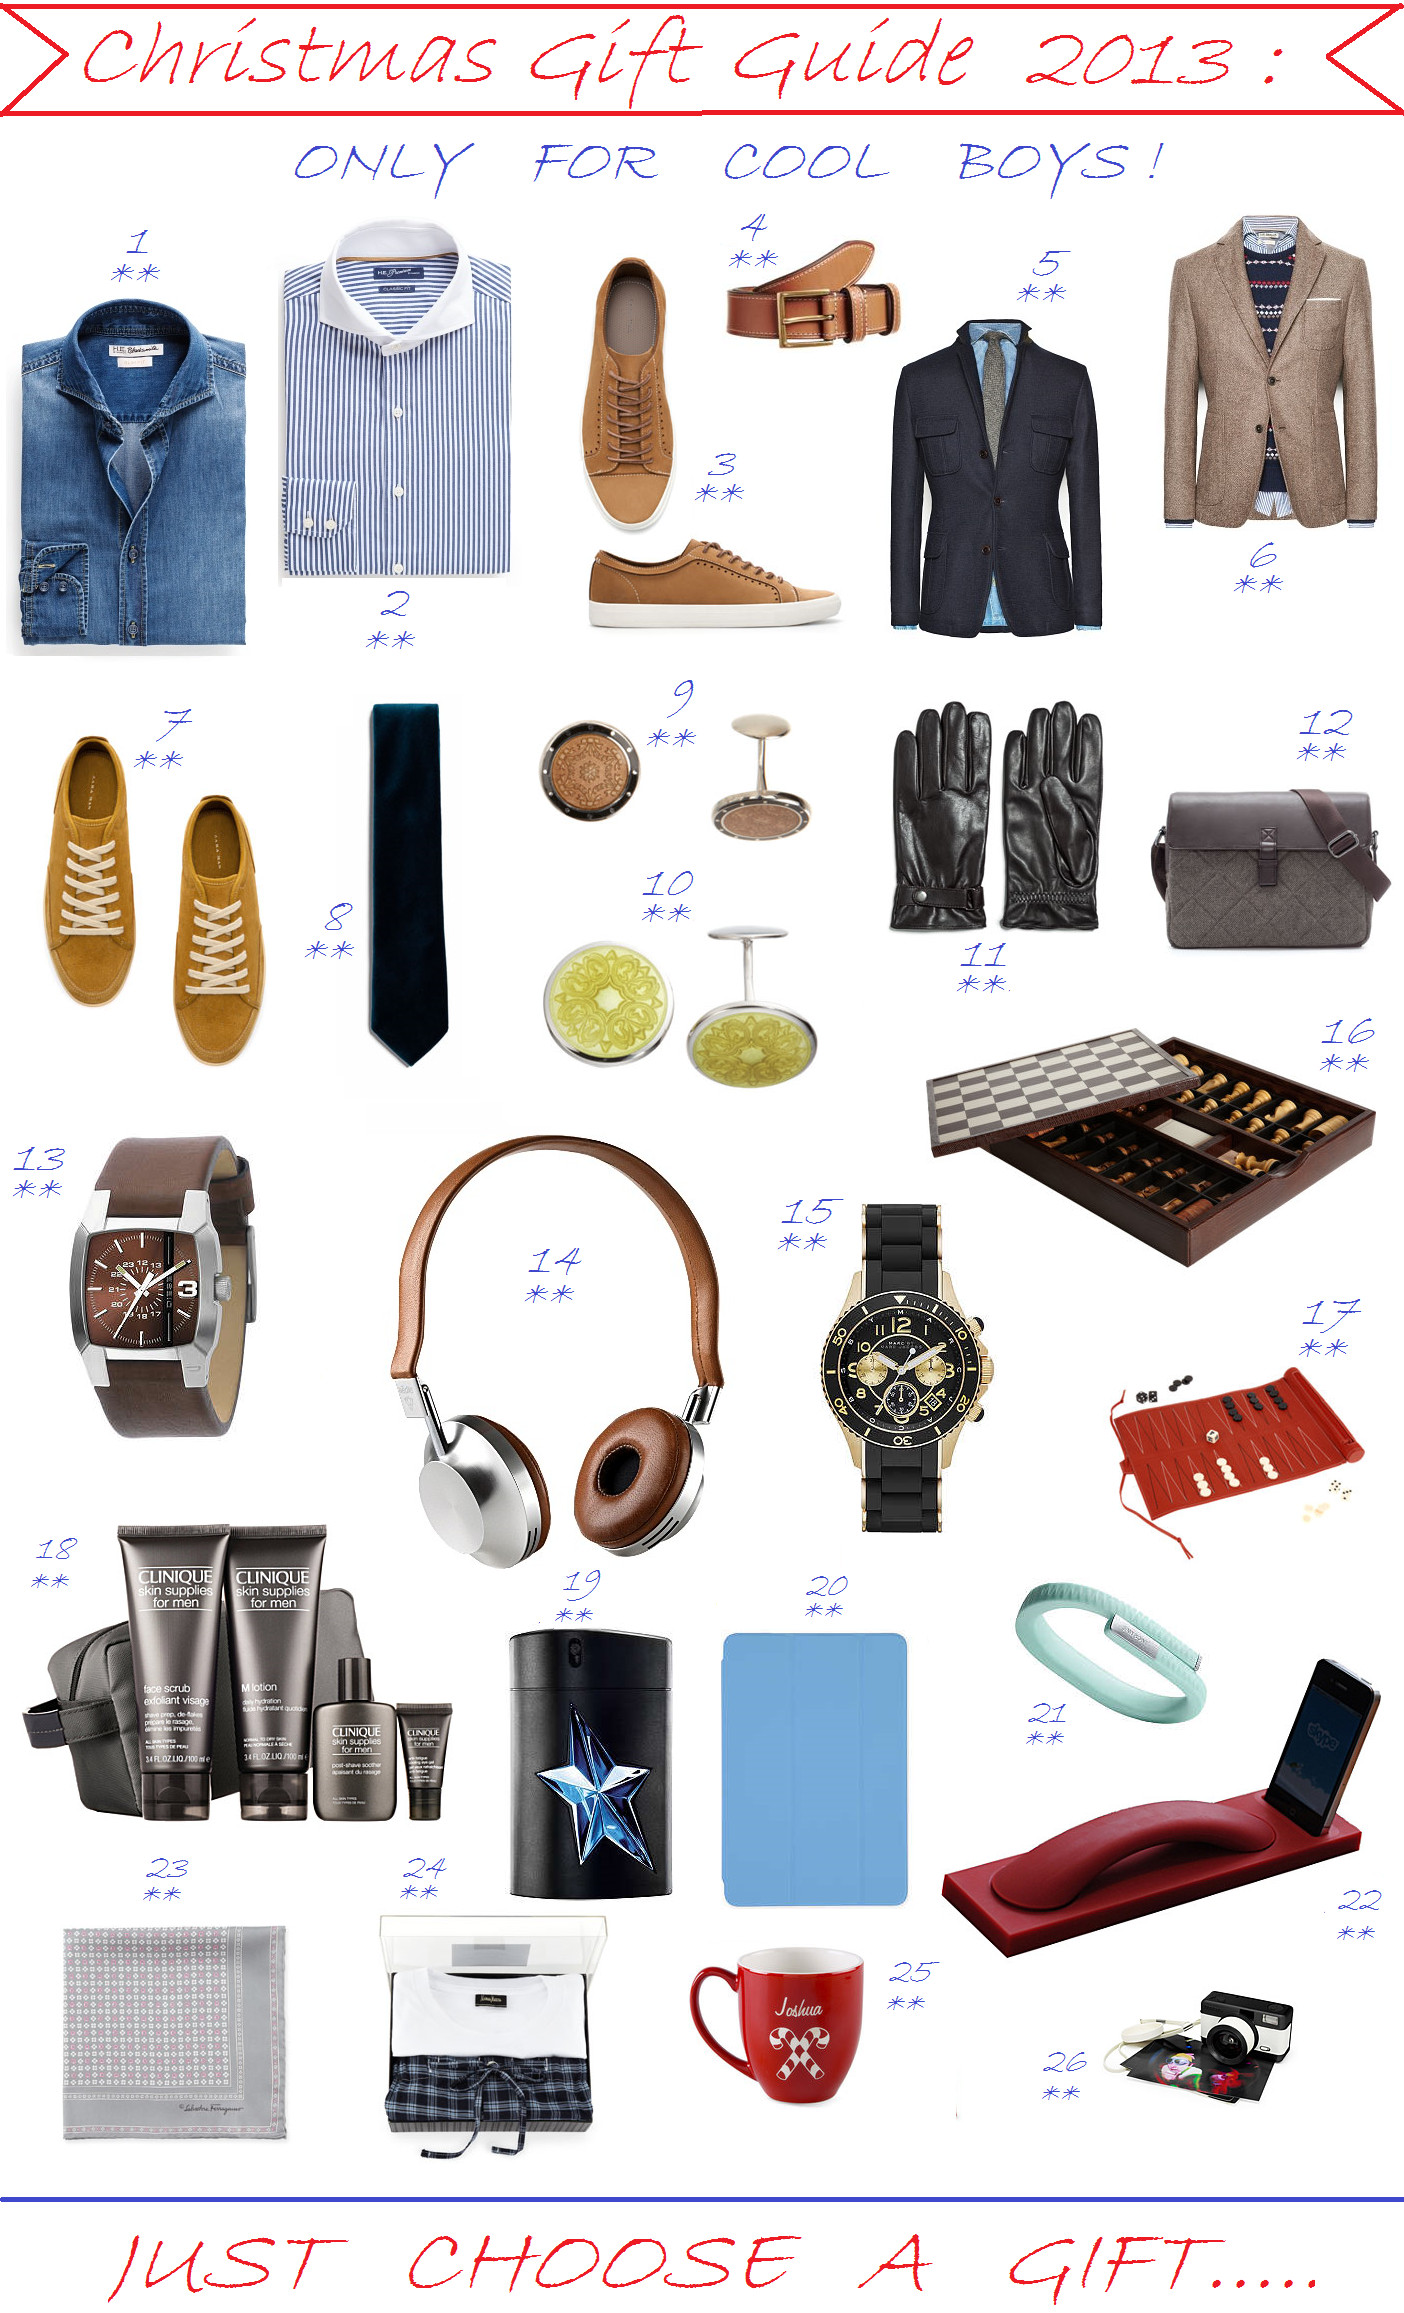 Best ideas about Xmas Gift Ideas For Boys . Save or Pin CHRISTMAS GIFT GUIDE 2013 ONLY FOR COOL BOYS Now.